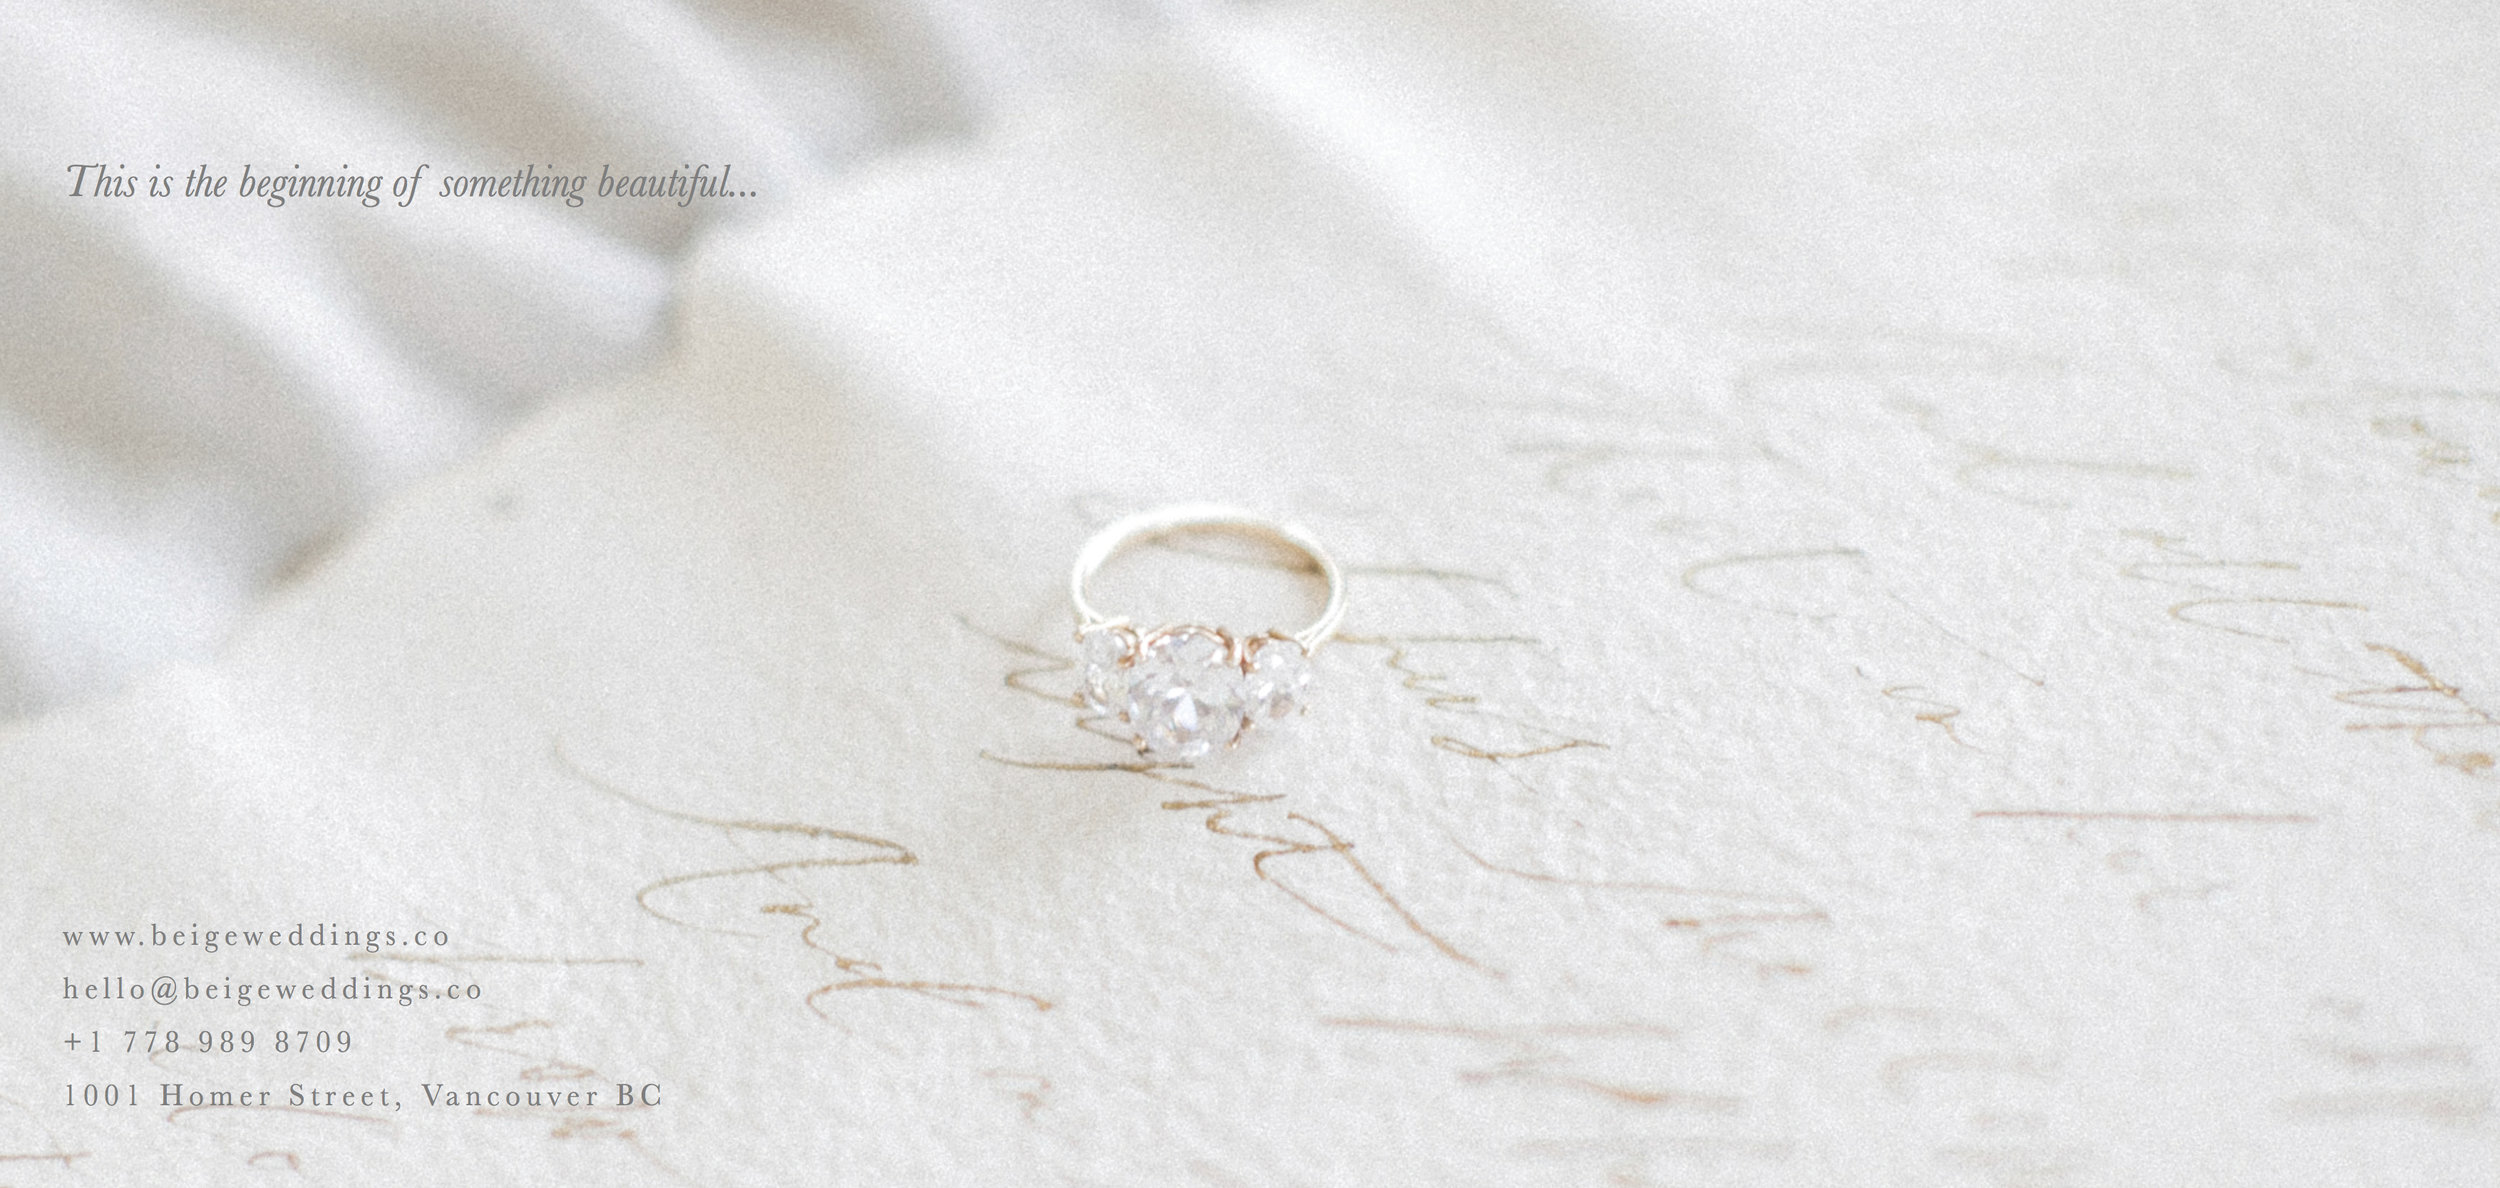 BeigeWeddings_Wedding_Collections13.jpg